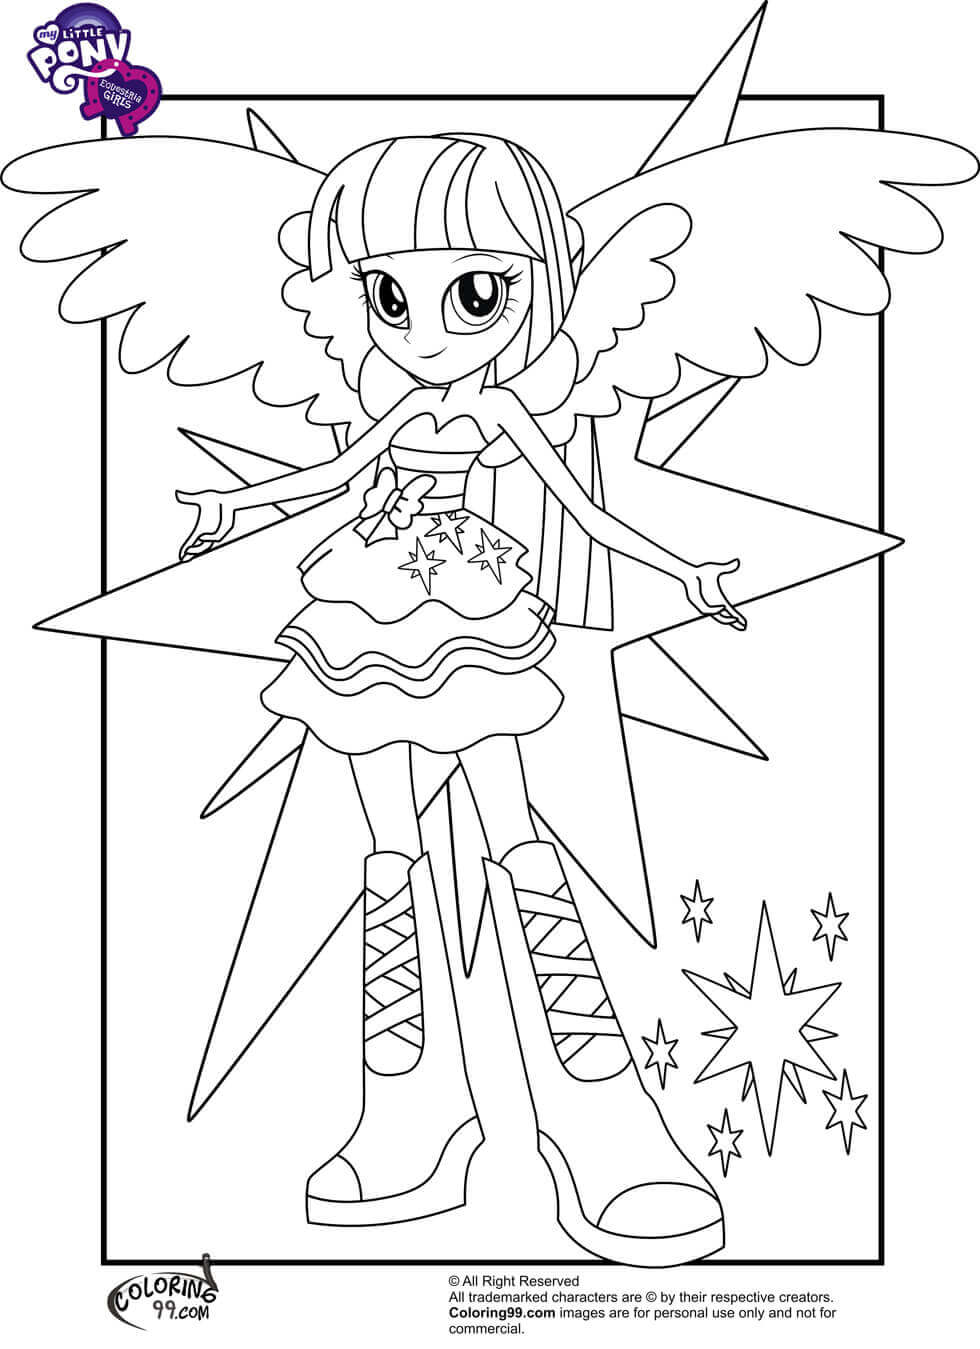 Equestria Girls Coloring Pages Glamorous 15 Printable My Little Pony Equestria Girls Coloring Pages Decorating Inspiration